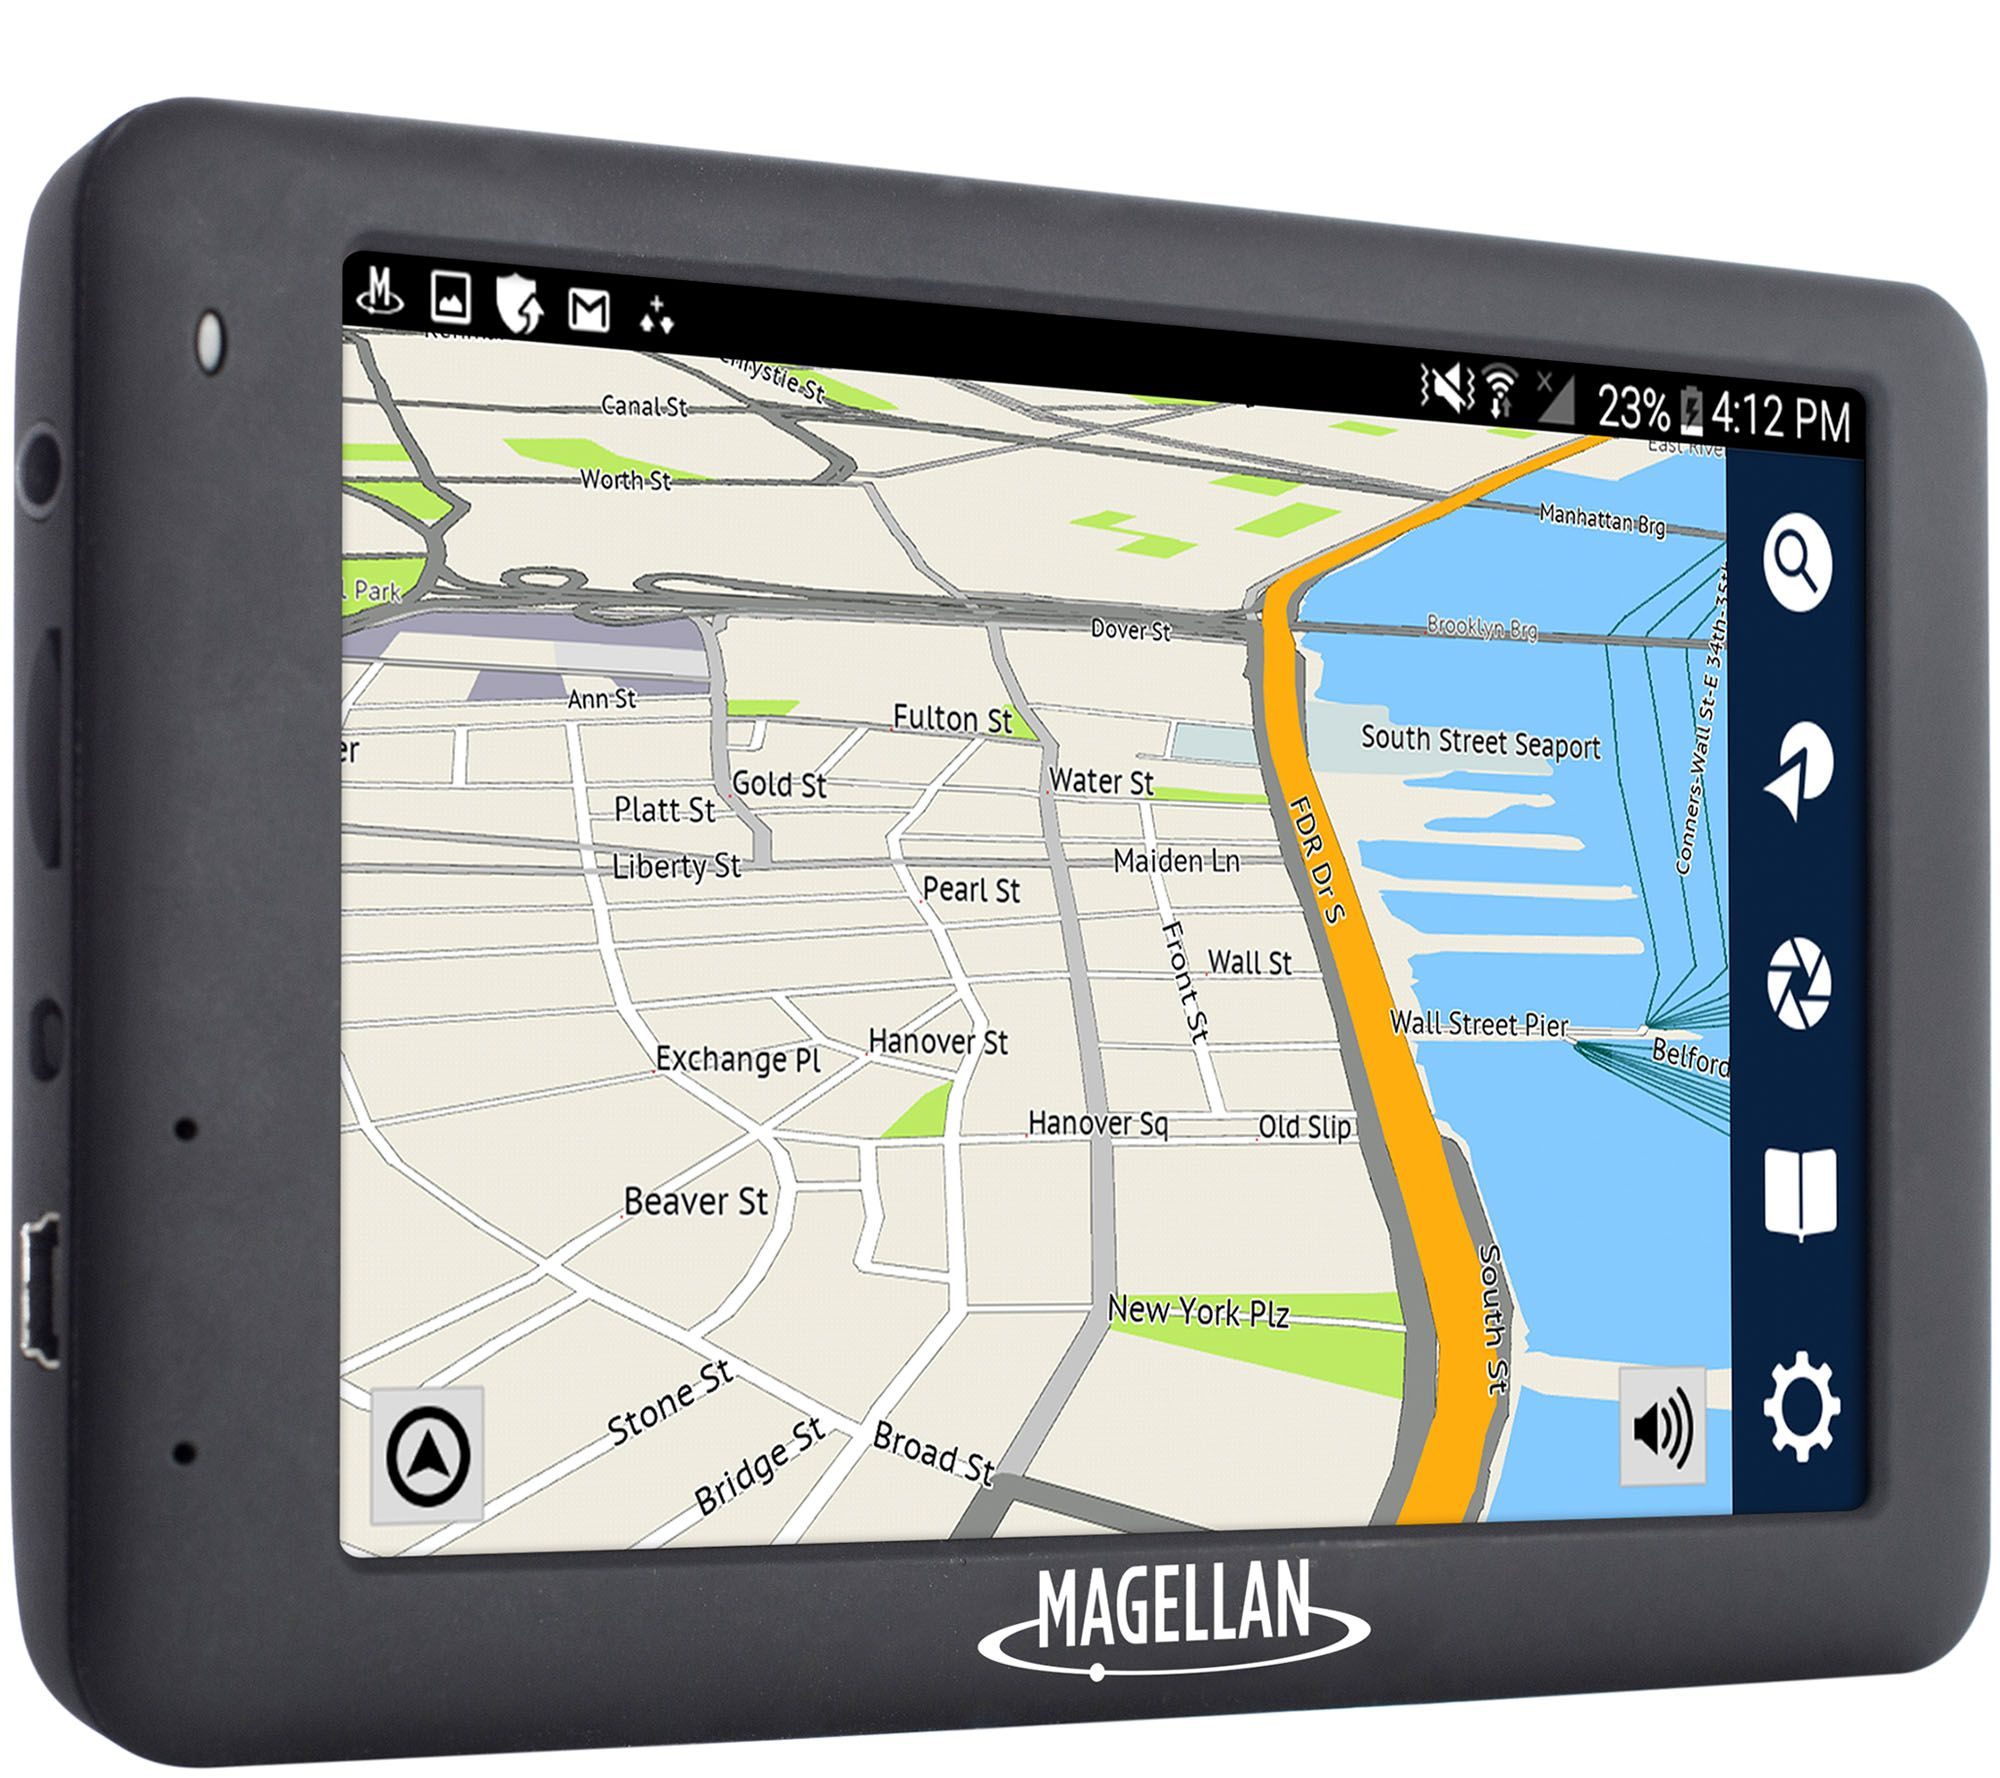 Magellan roadmate all in one gps full hd 1080p dash camera e230473